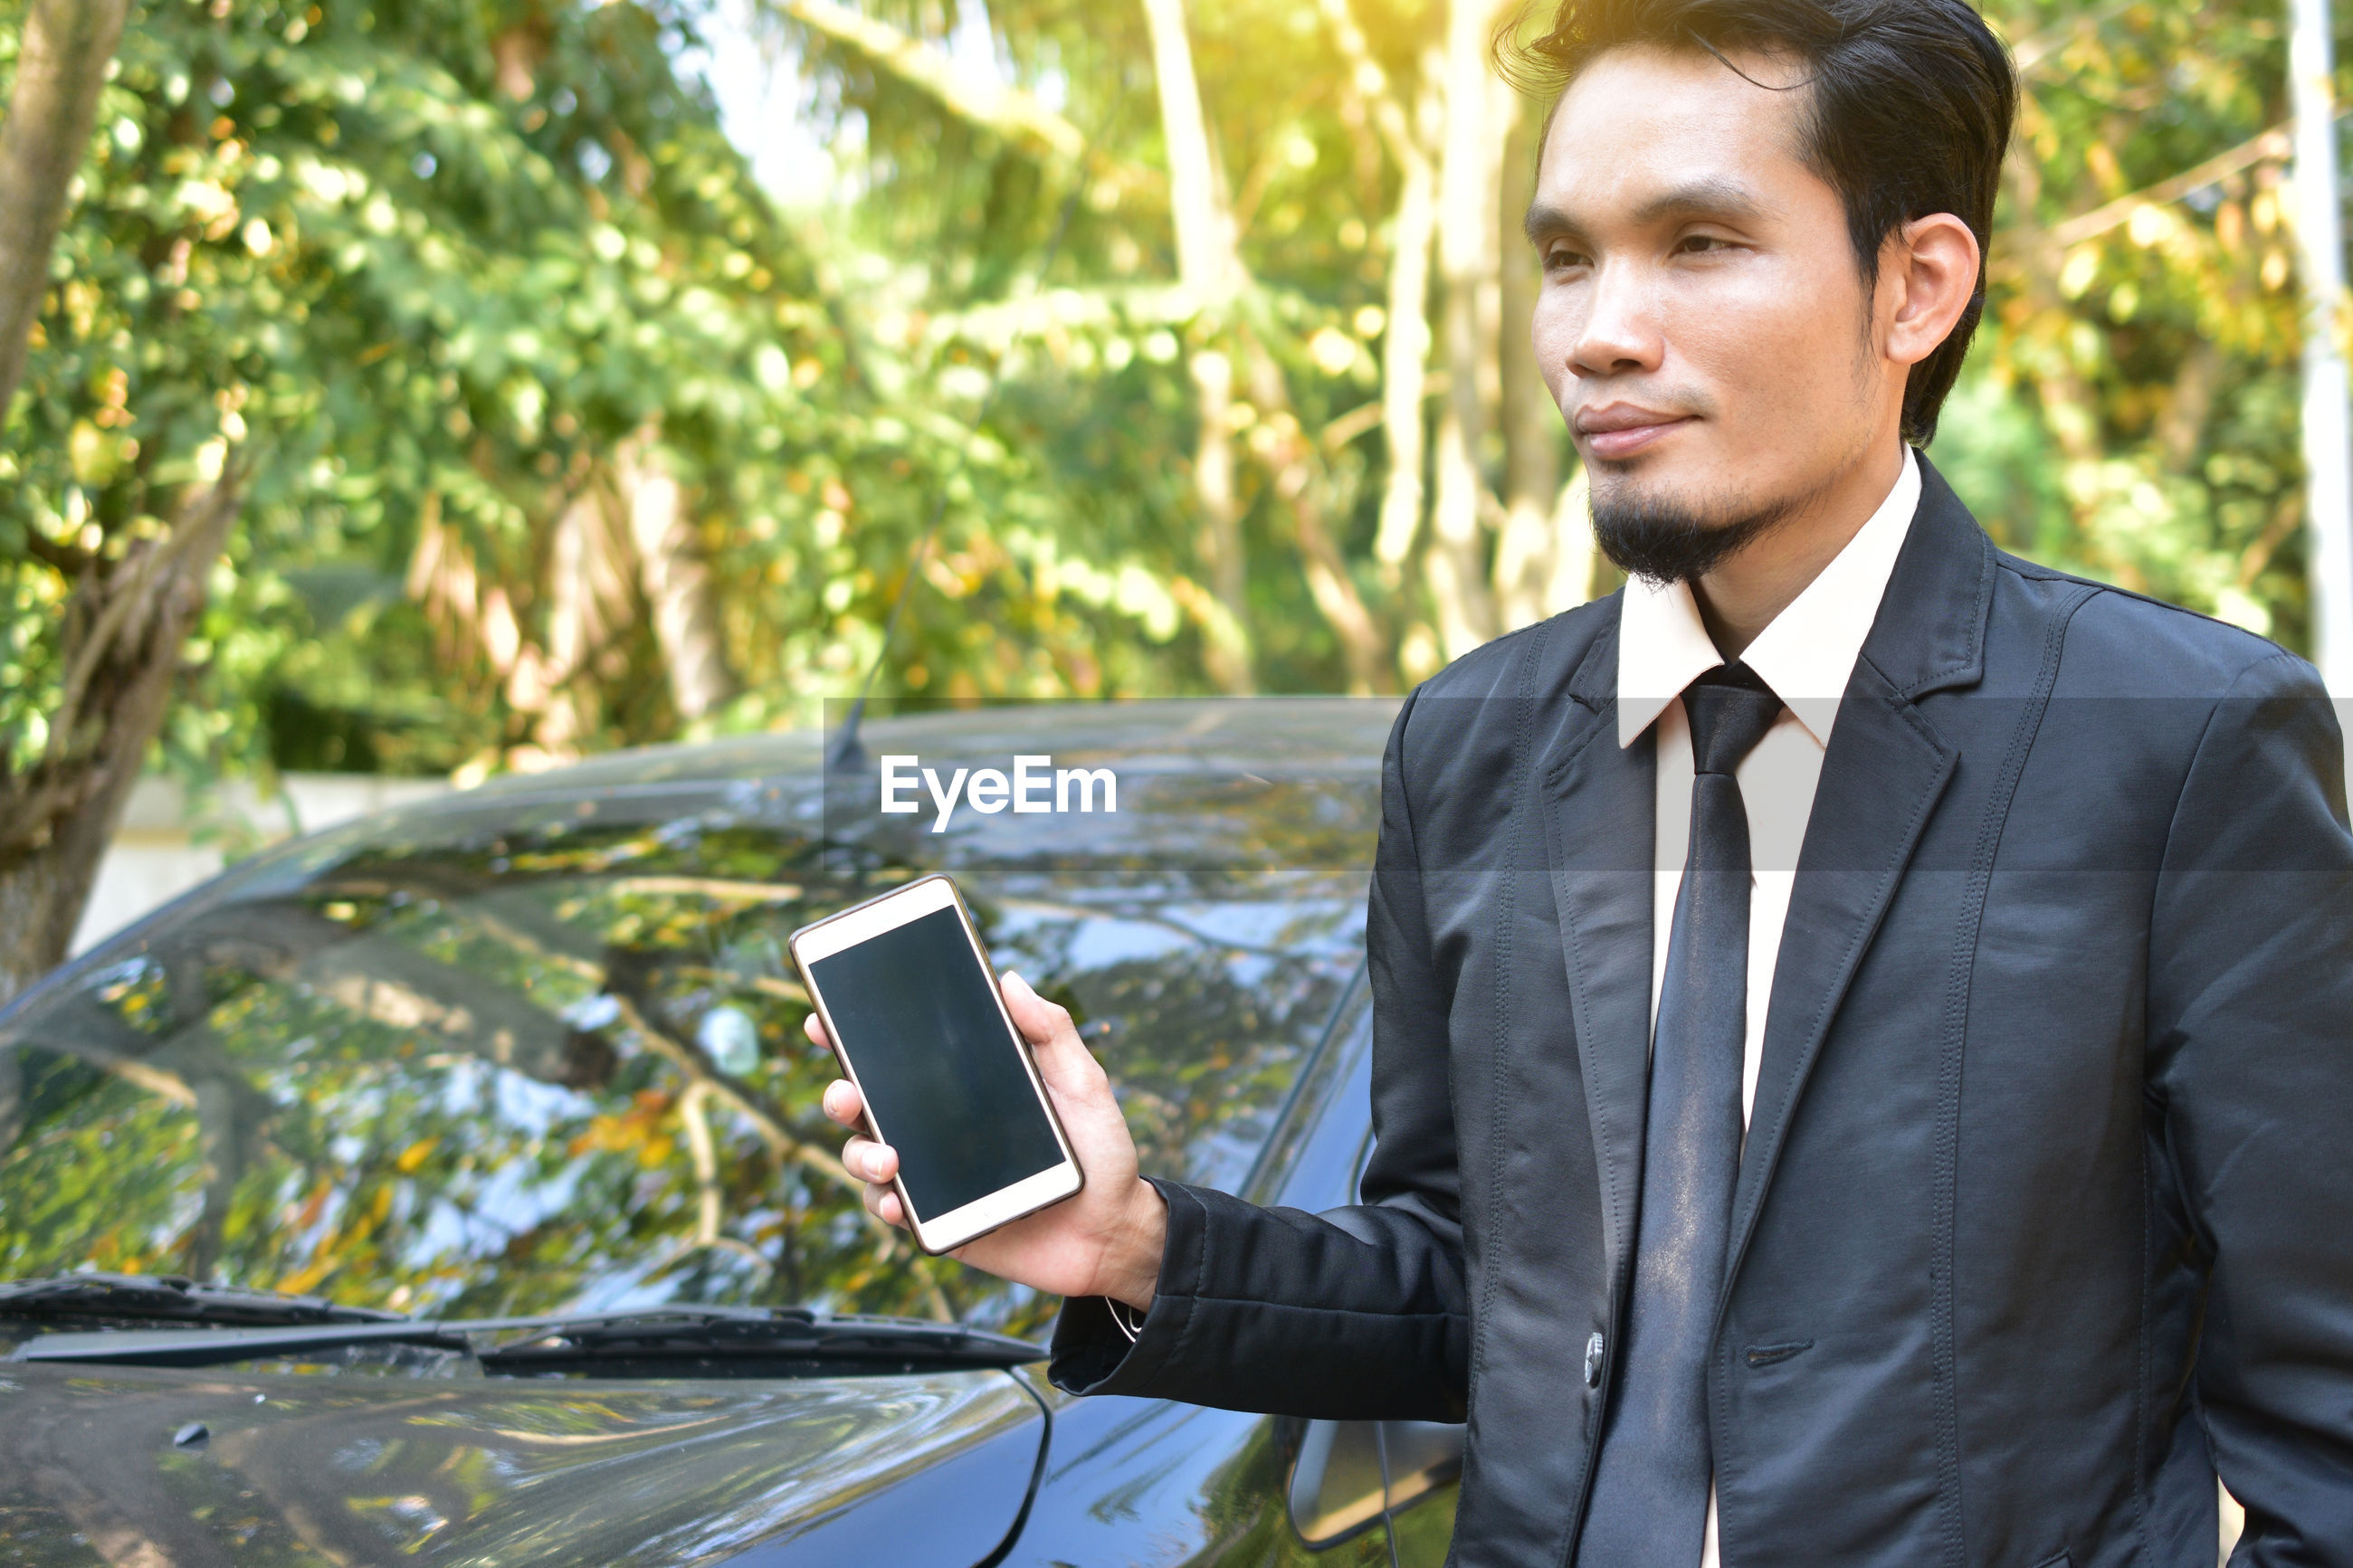 Businessman holding mobile phone while standing by car